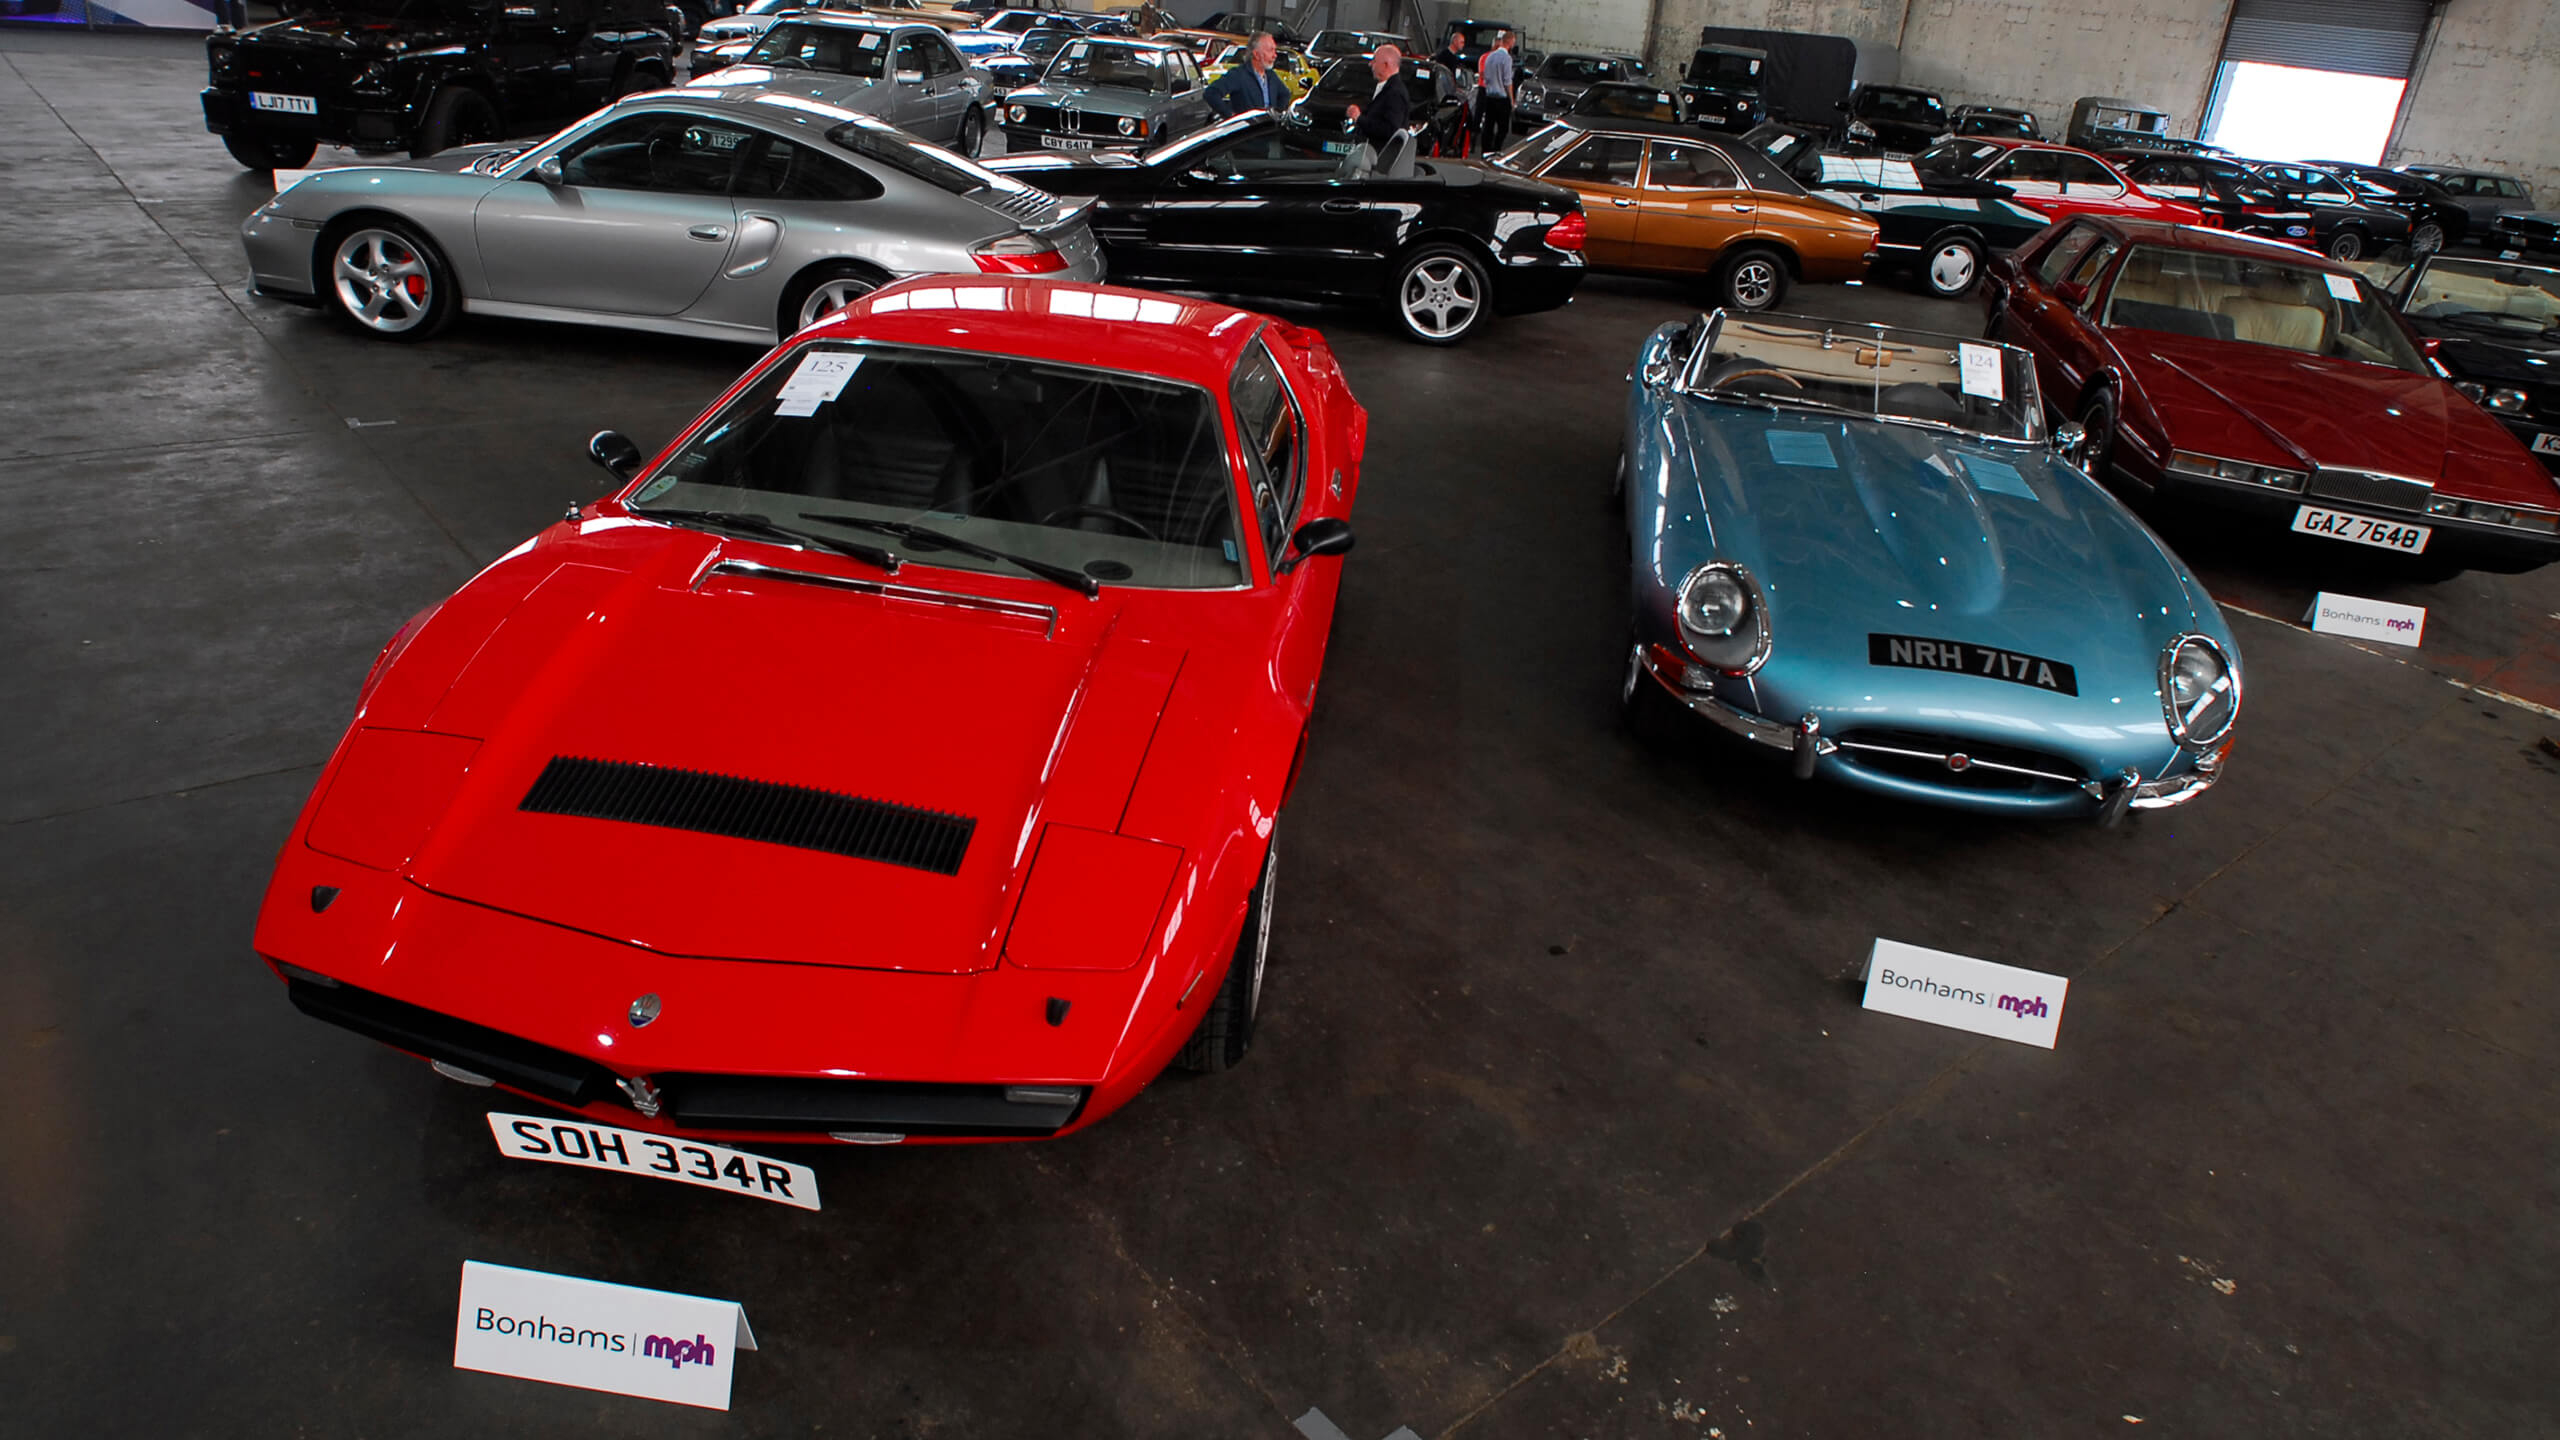 Bonhams' £2.2m 25 July 2020 MPH auction